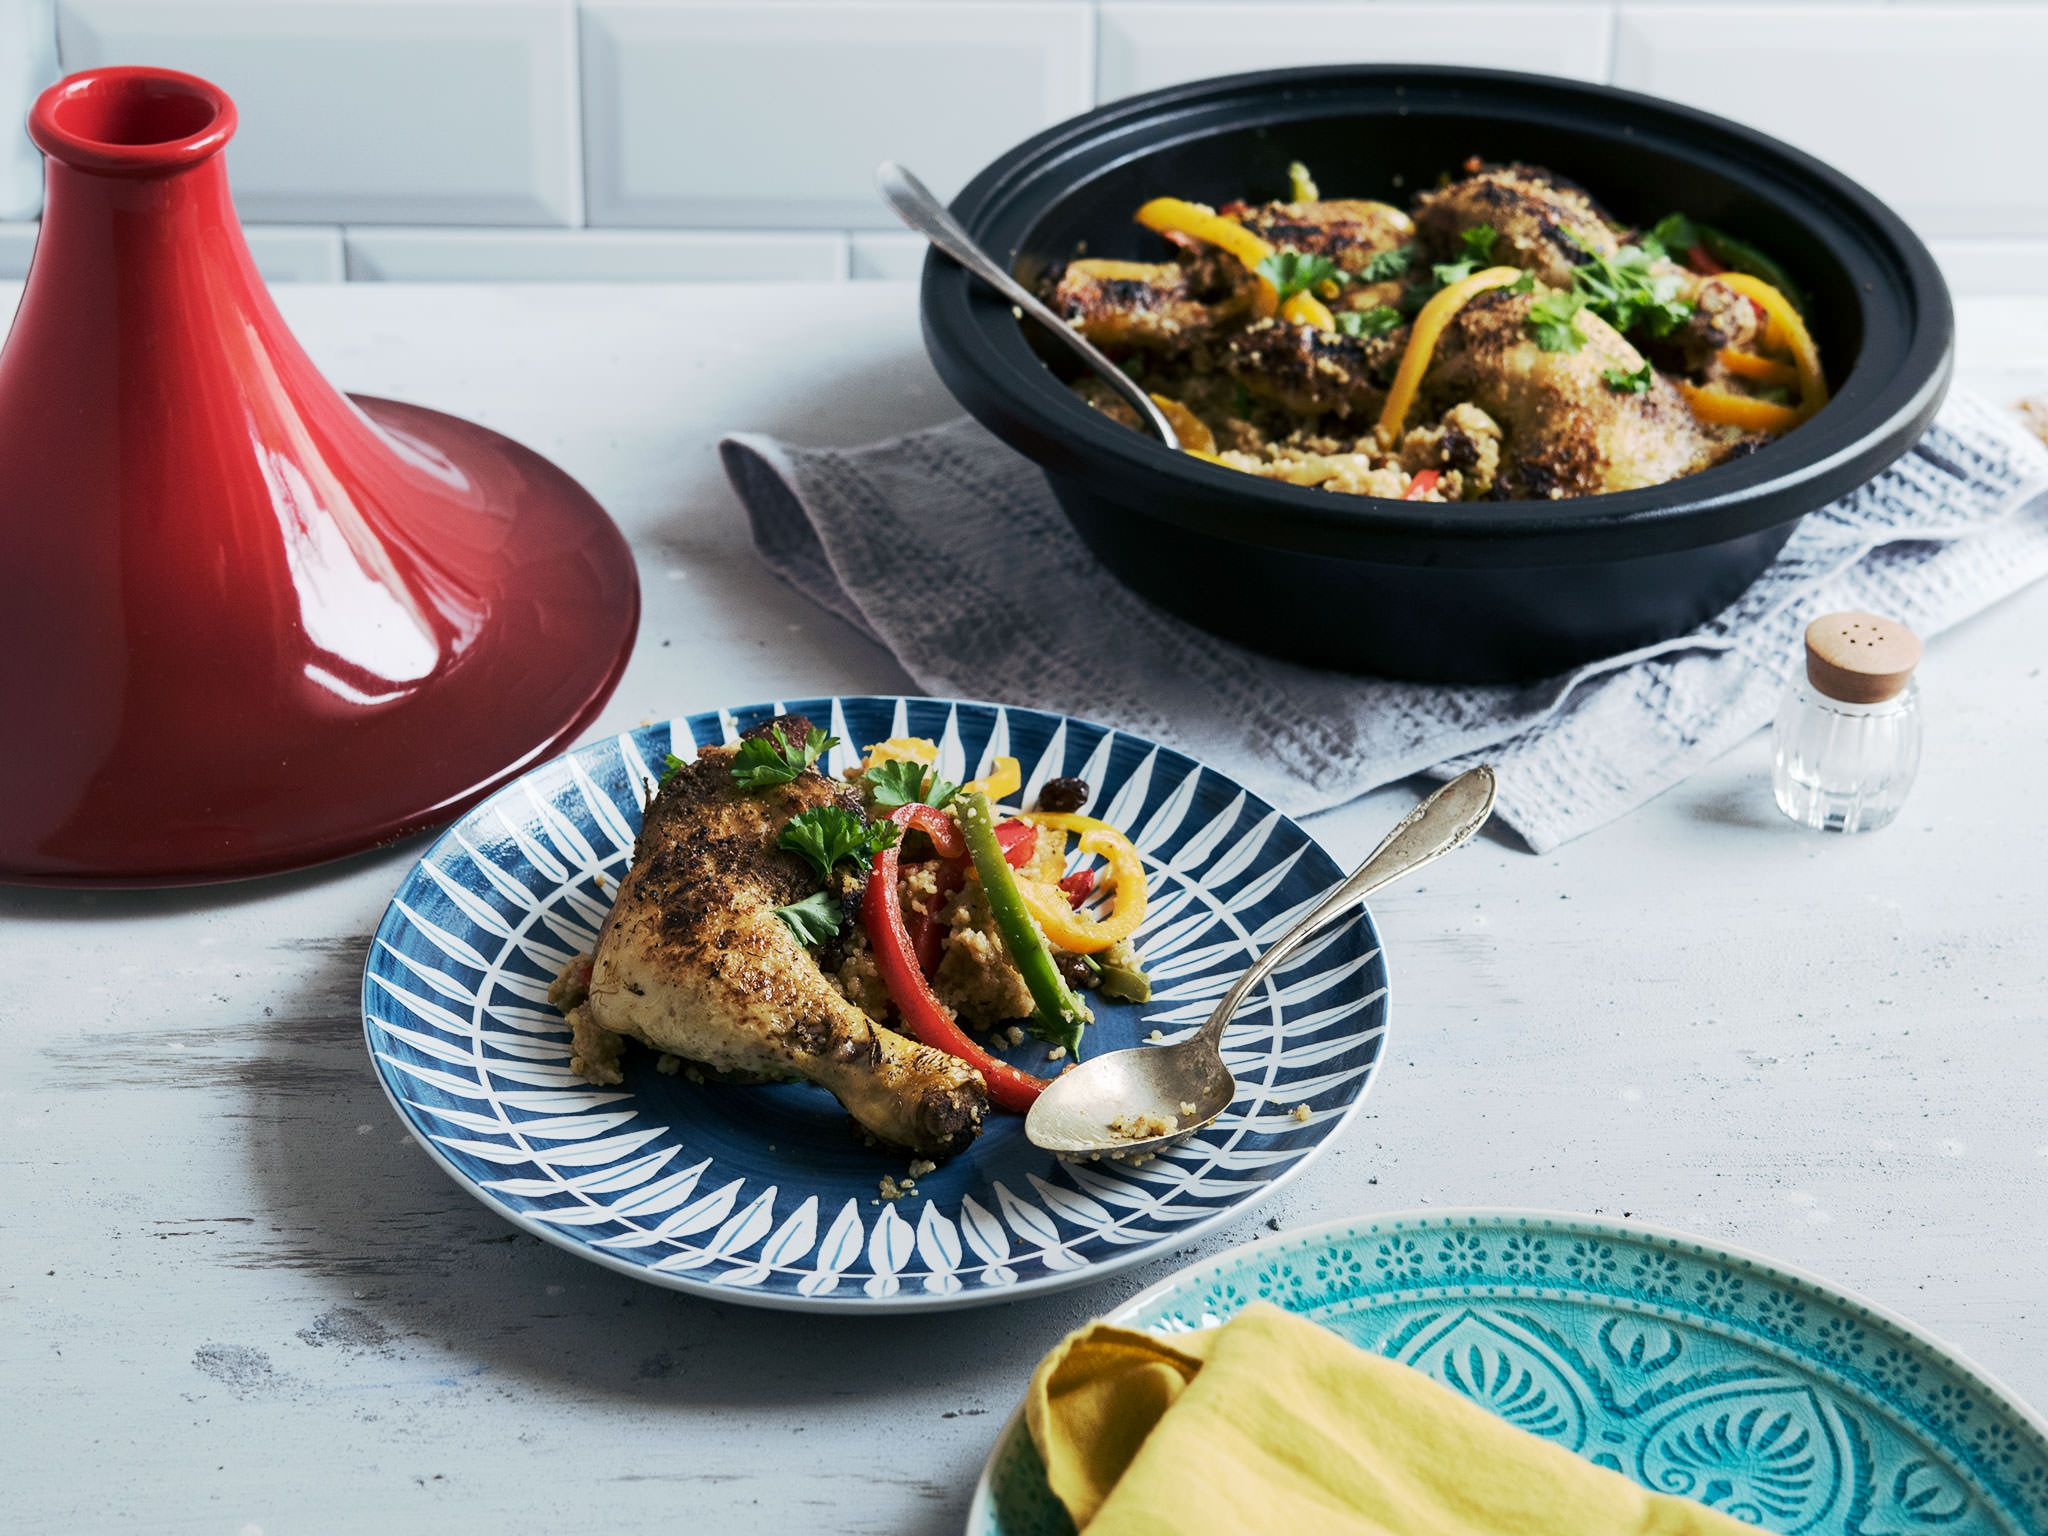 This hearty dish always reminds me of my grandmother. She was the only one I knew who used a tagine. The spices, peppers, and the chicken legs add up to a taste explosion!